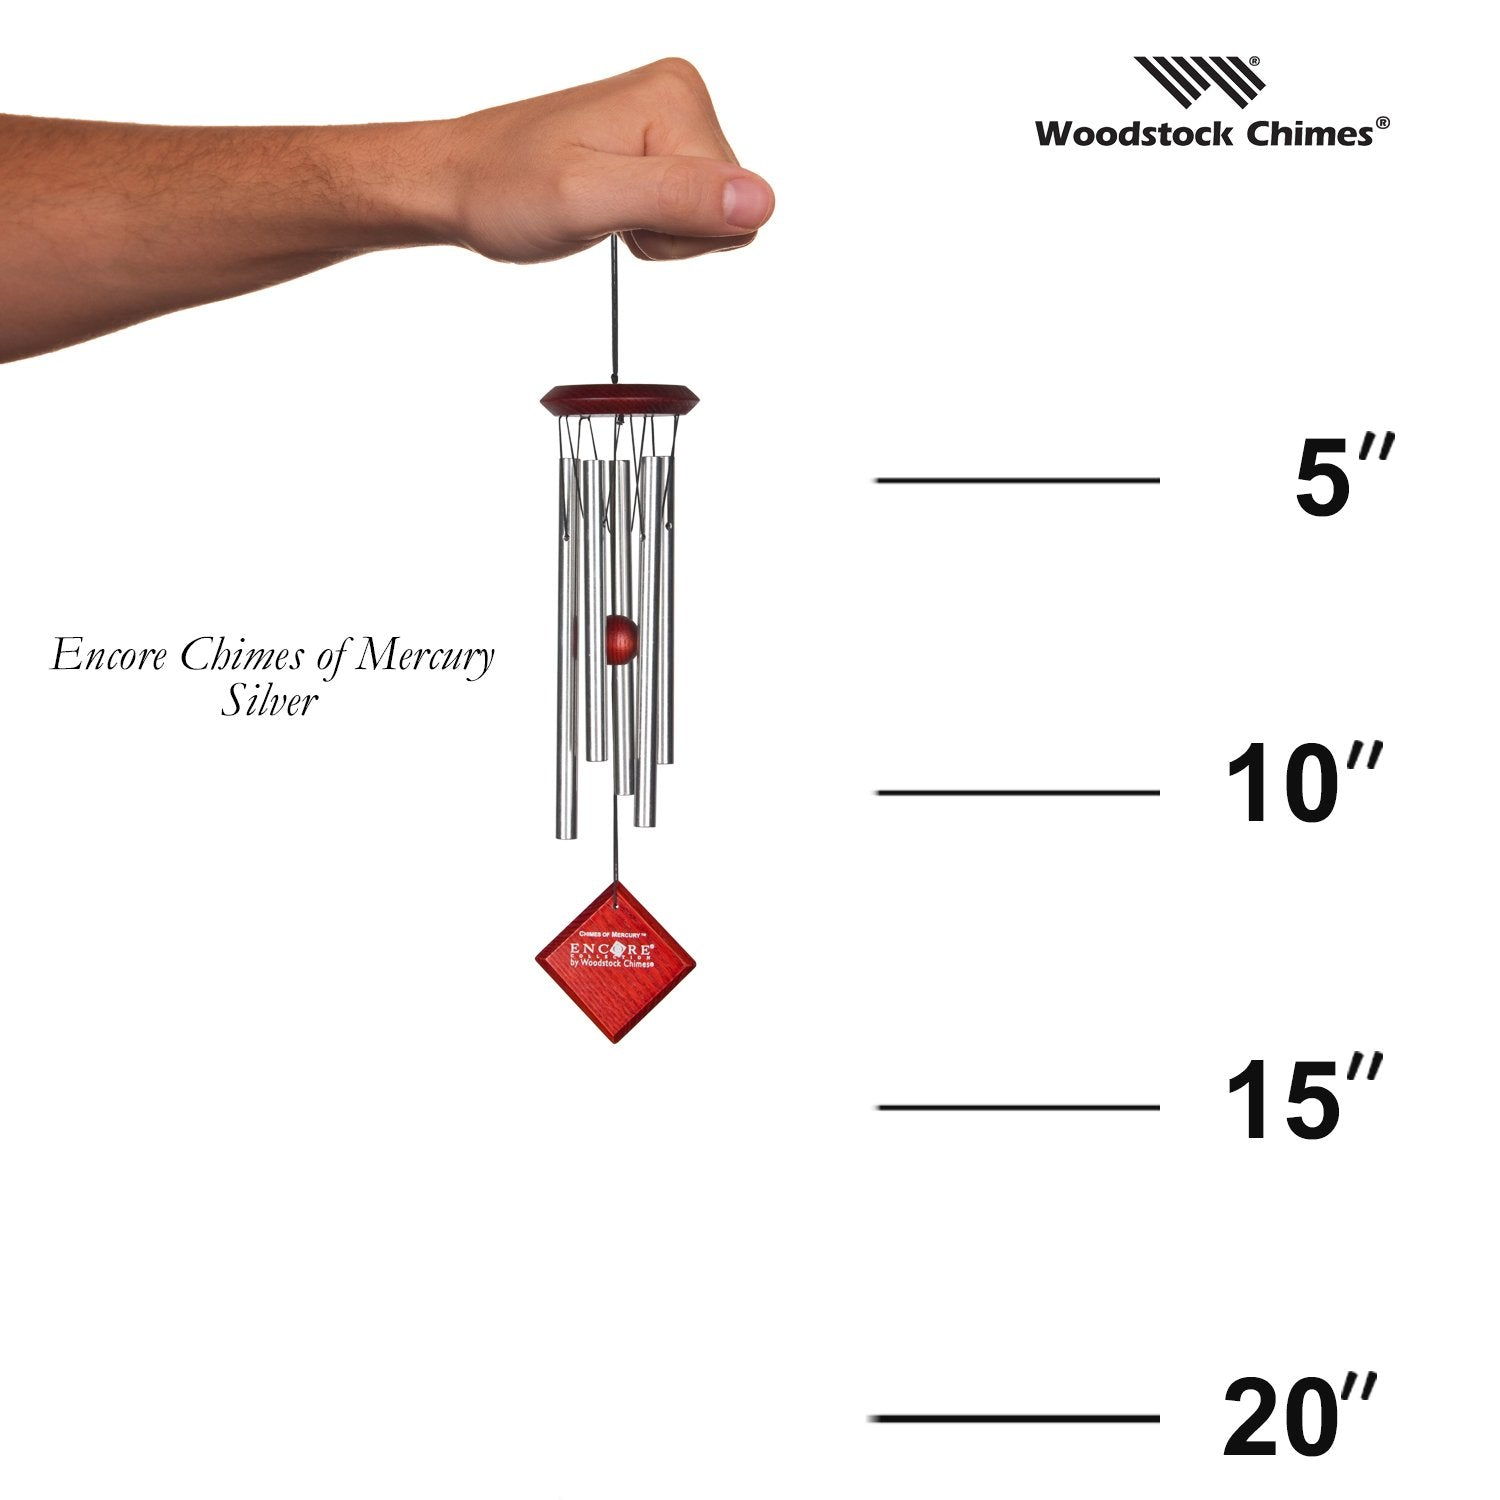 Encore Chimes of Mercury - Silver proportion image